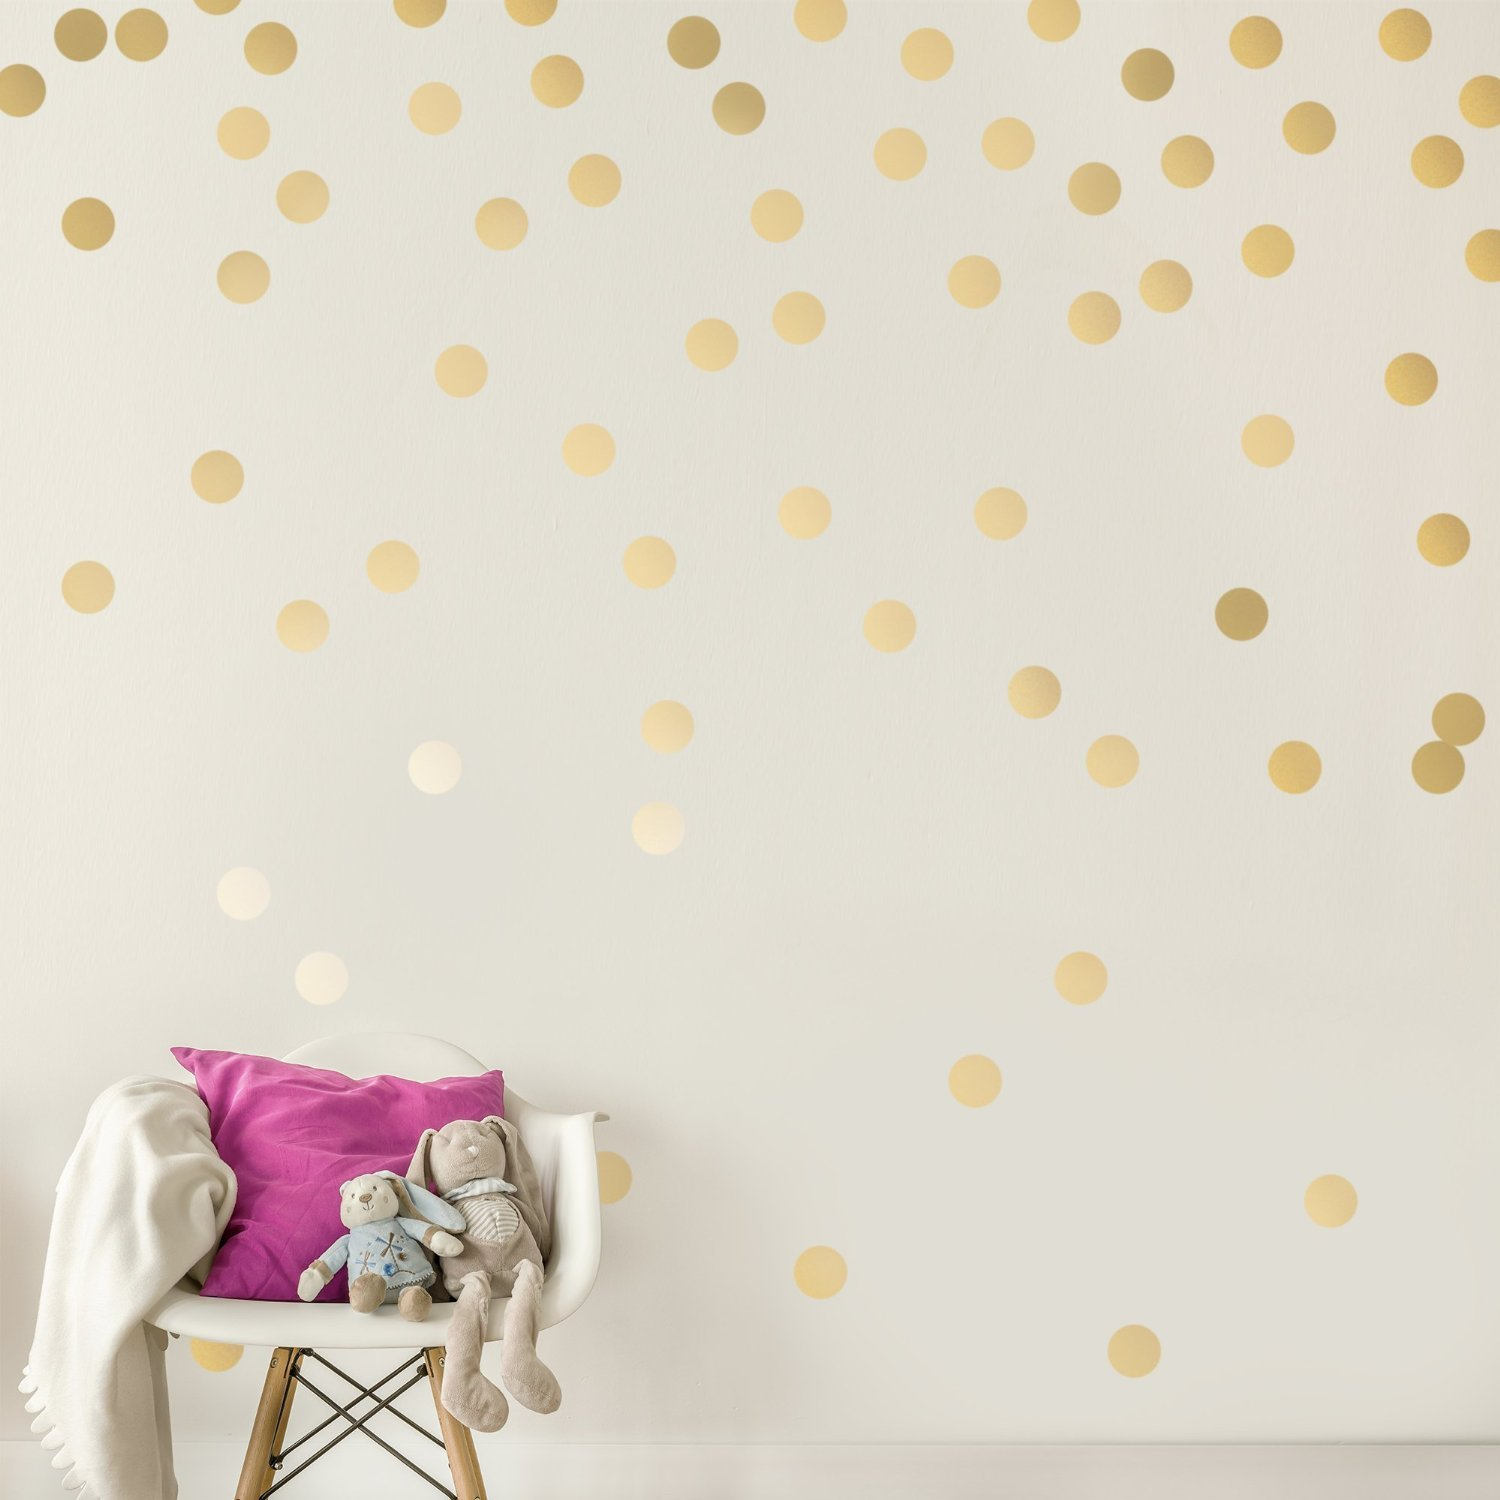 Top 10 Best Wall Decals